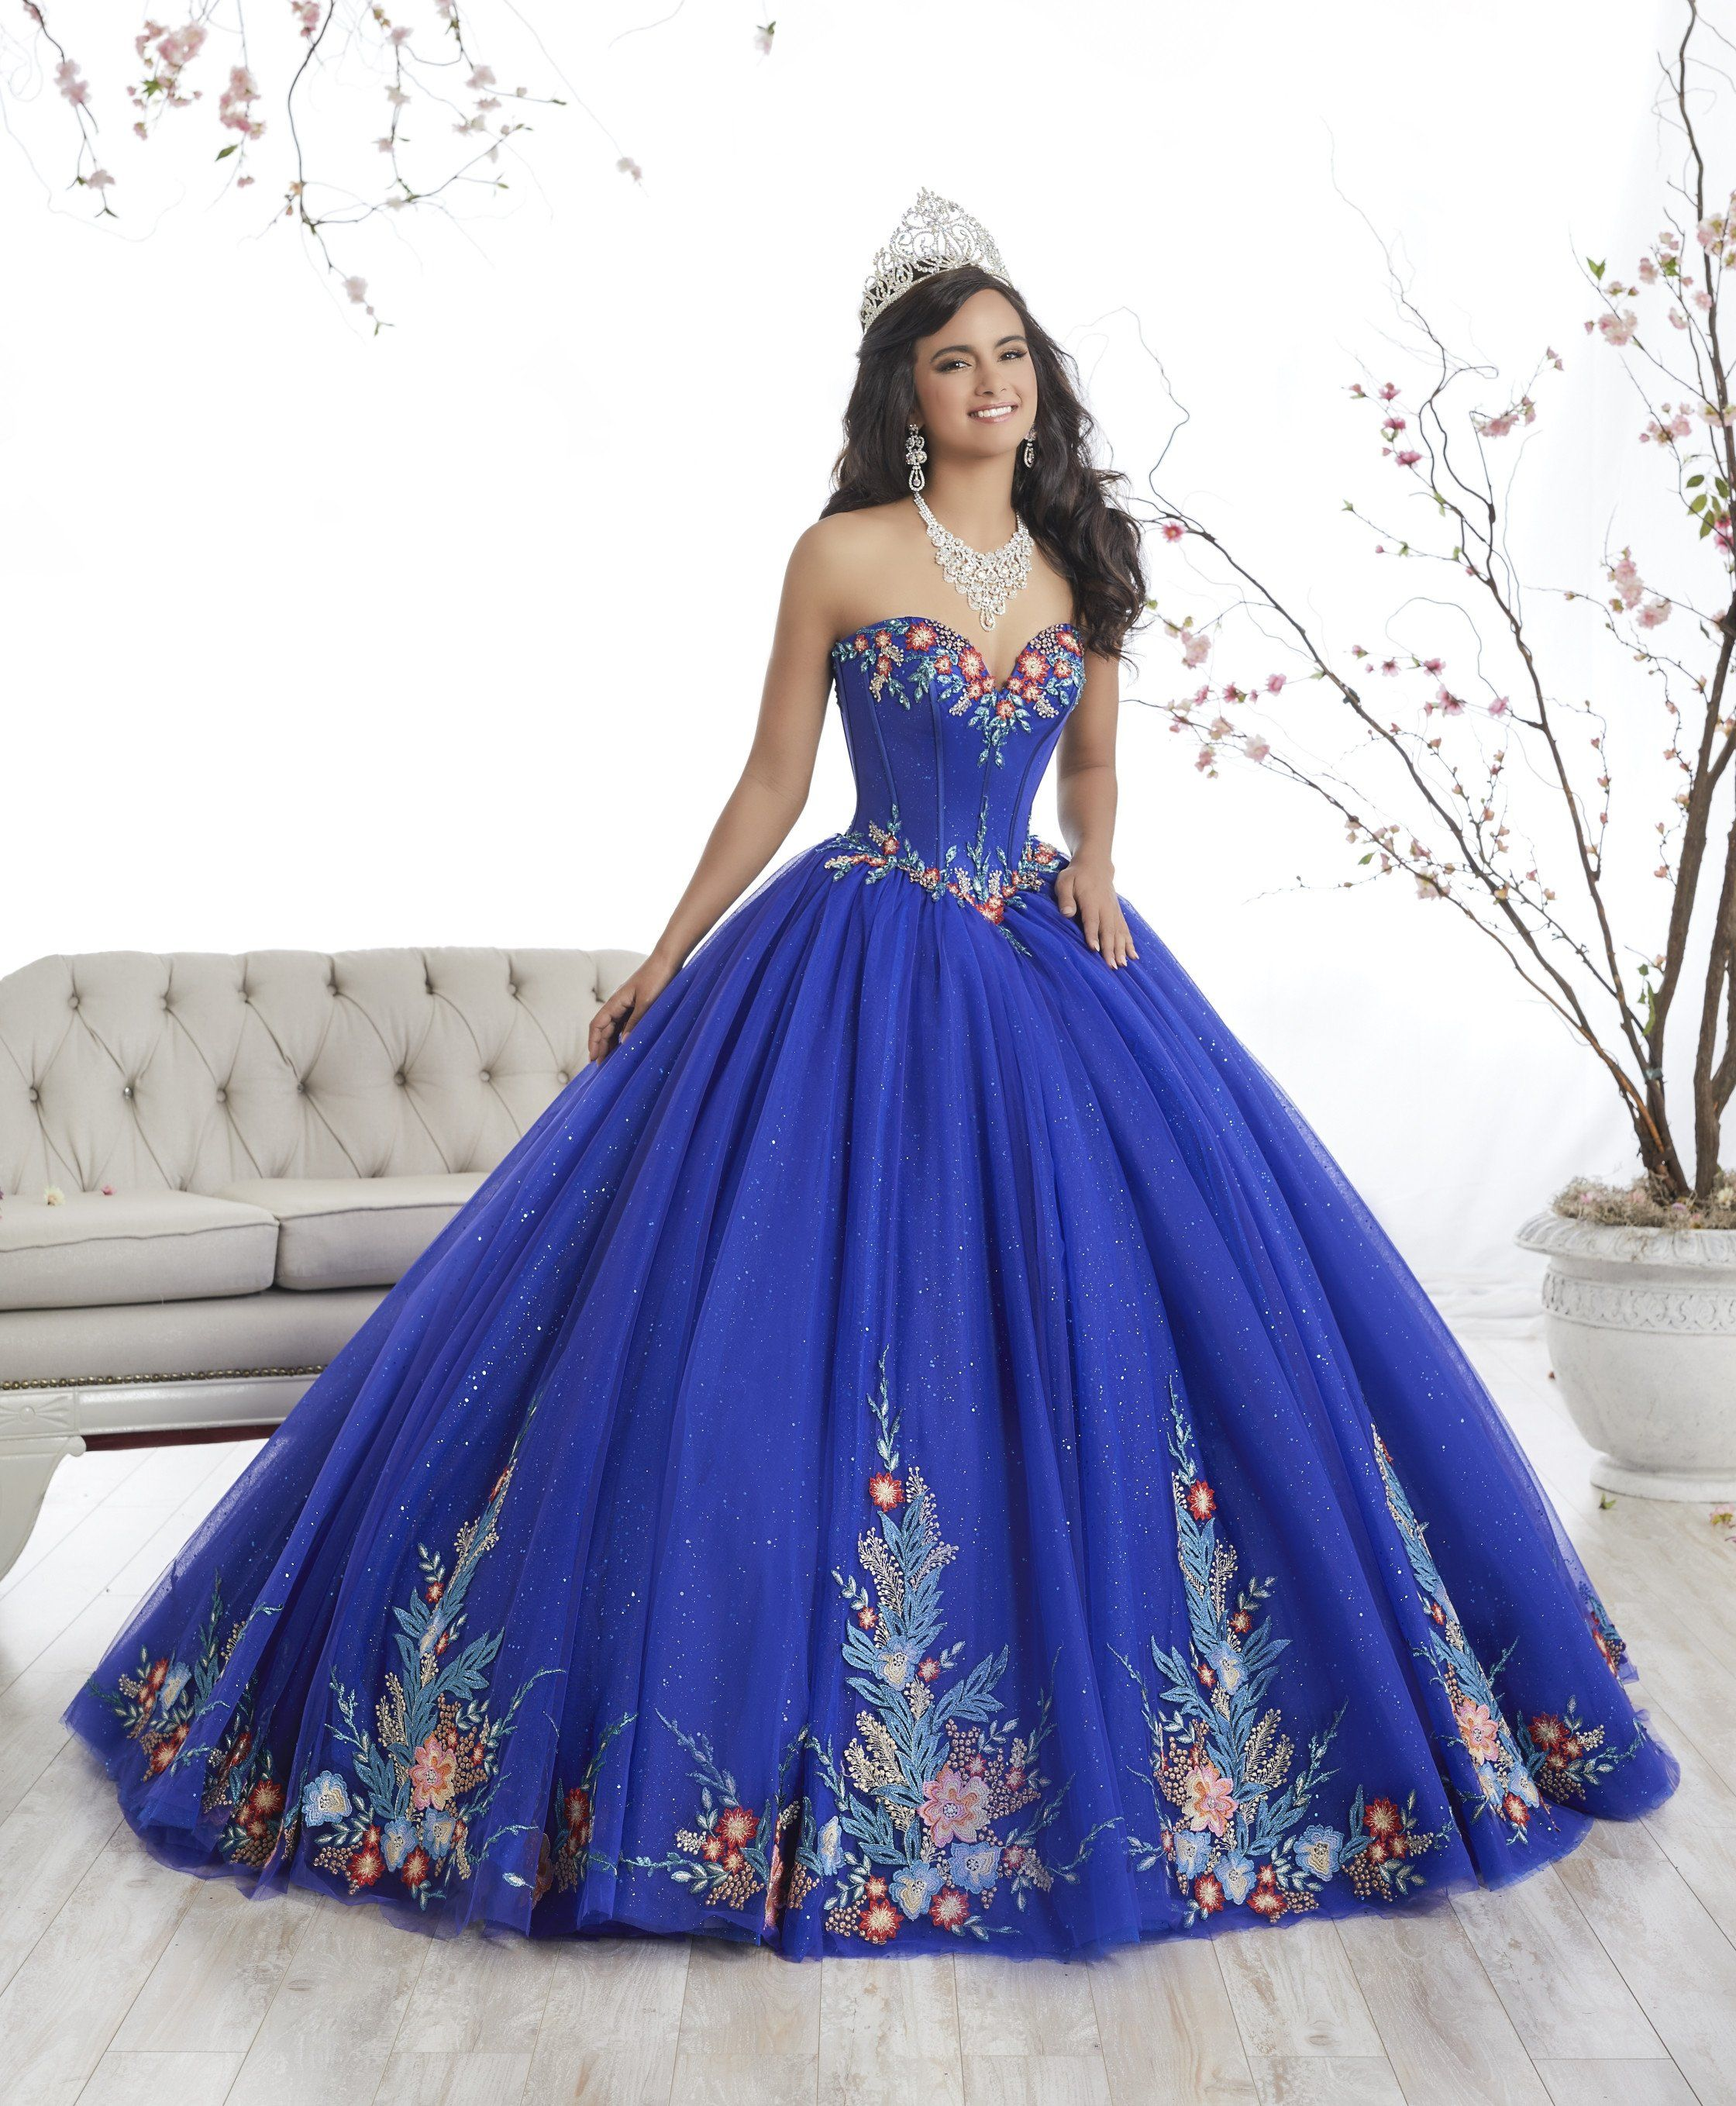 b0c7c6e40db Floral Appliqued A-line Quinceanera Dress by House of Wu 26869